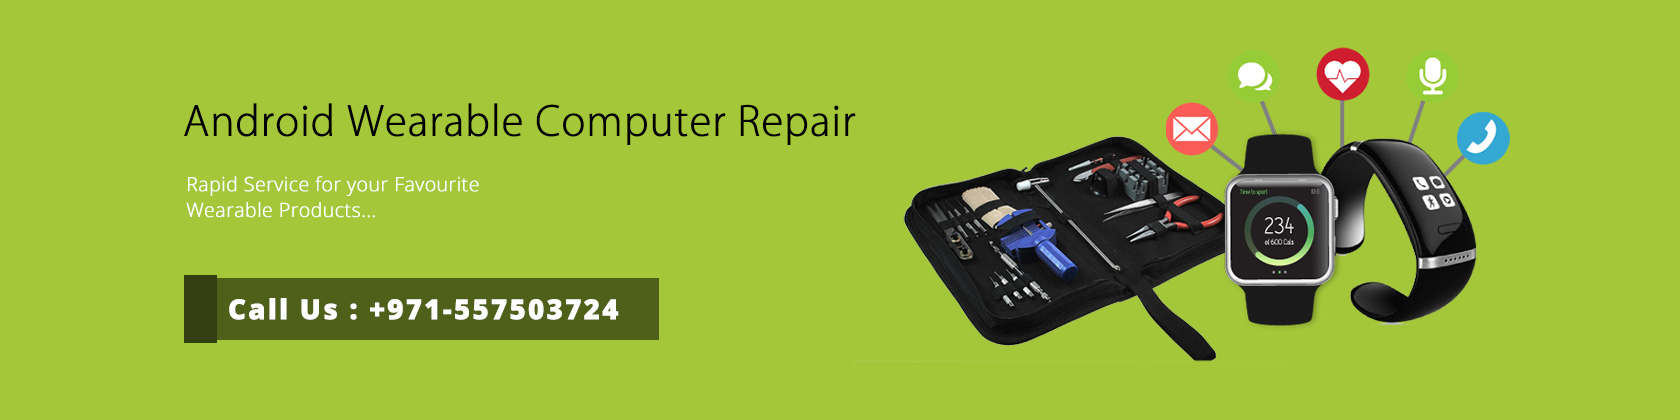 Android-Wearable-Computer-Repair